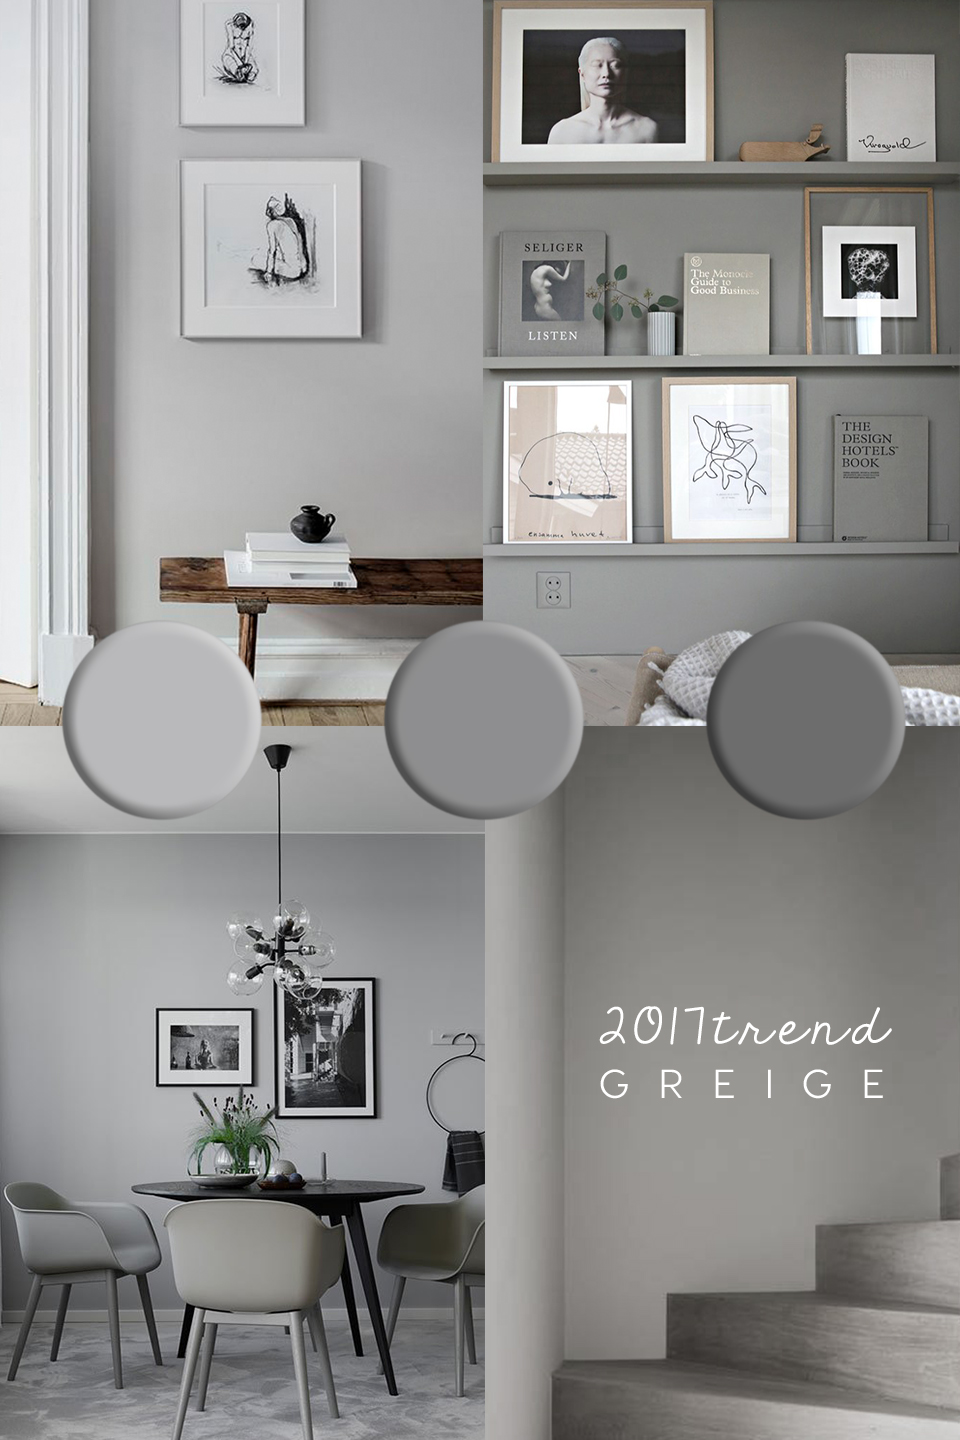 greige color, GREIGE PAINT, WARM GREY, WARM GREY PAINT, COLOUR TRENDS 2017, INTERIOR TRENDS, italianbark INTERIOR DESIGN BLOG